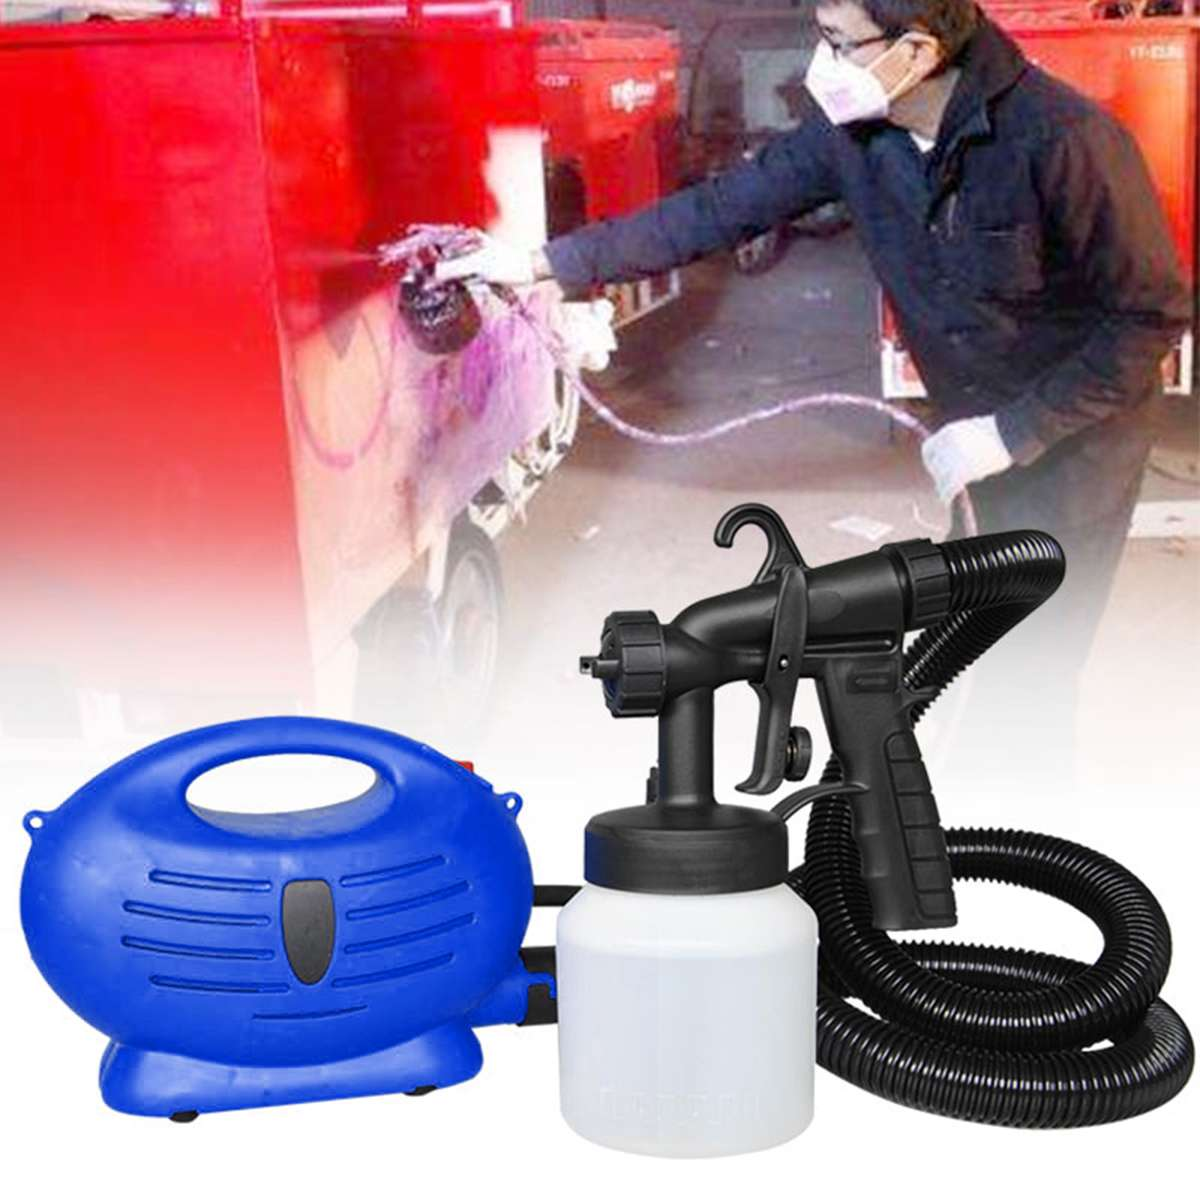 Electric Paint Spray Gun Automatic High Pressure Sprayer Paint Tool For Painting Car Wood Furniture garden tool Electric coating metal hose nozzle high pressure water spray gun sprayer garden auto car washing